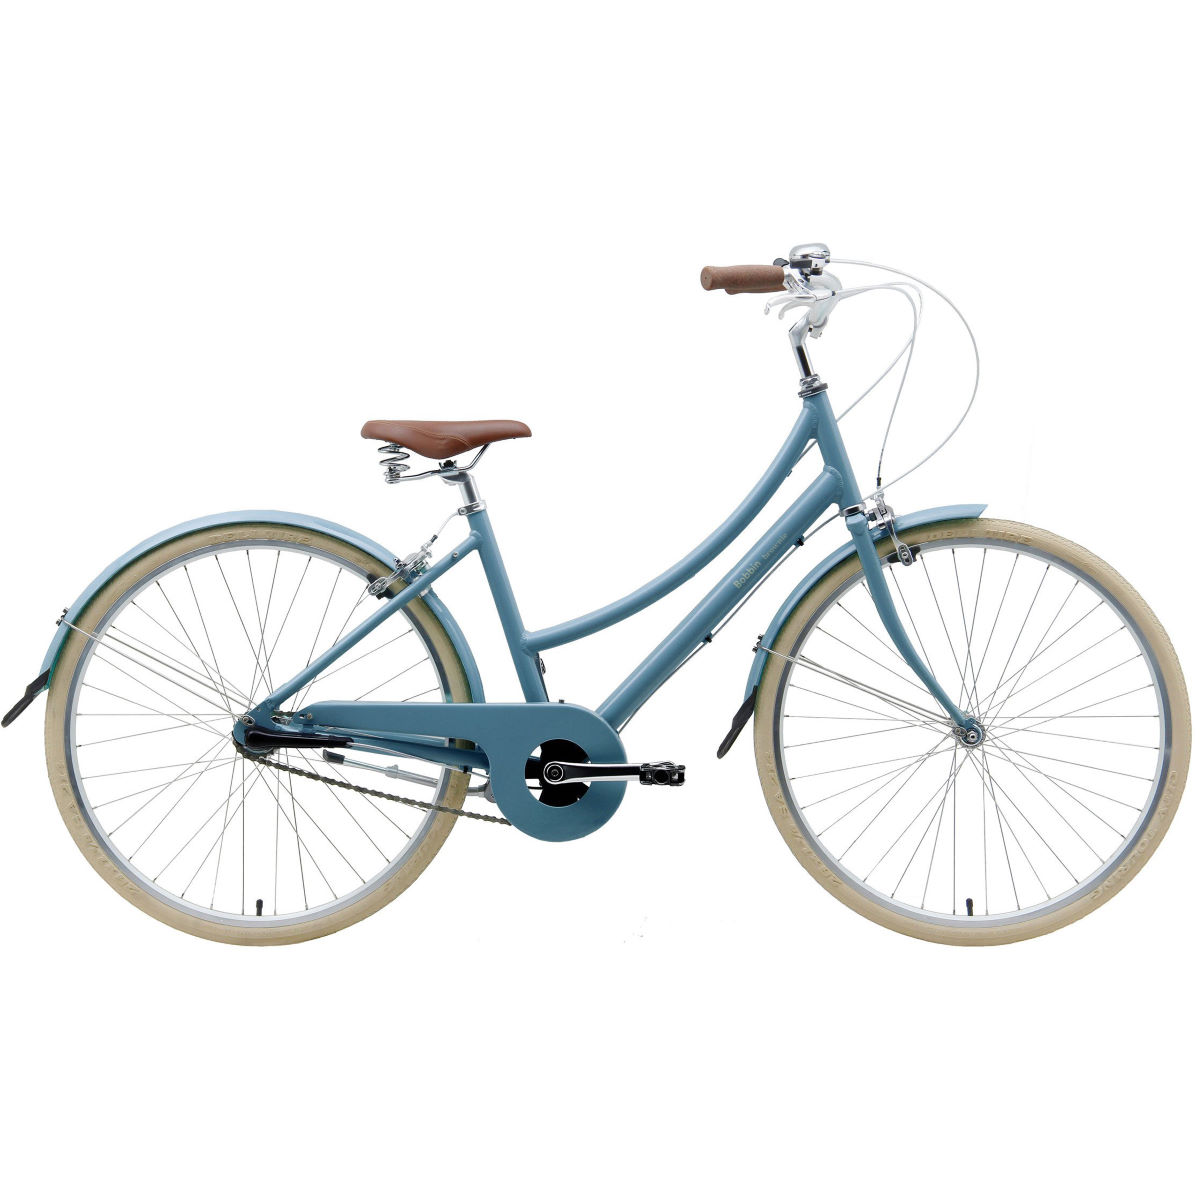 Vélo hybride Bobbin Brownie 3 (2017) - 52cm Stock Bike Moody Blue